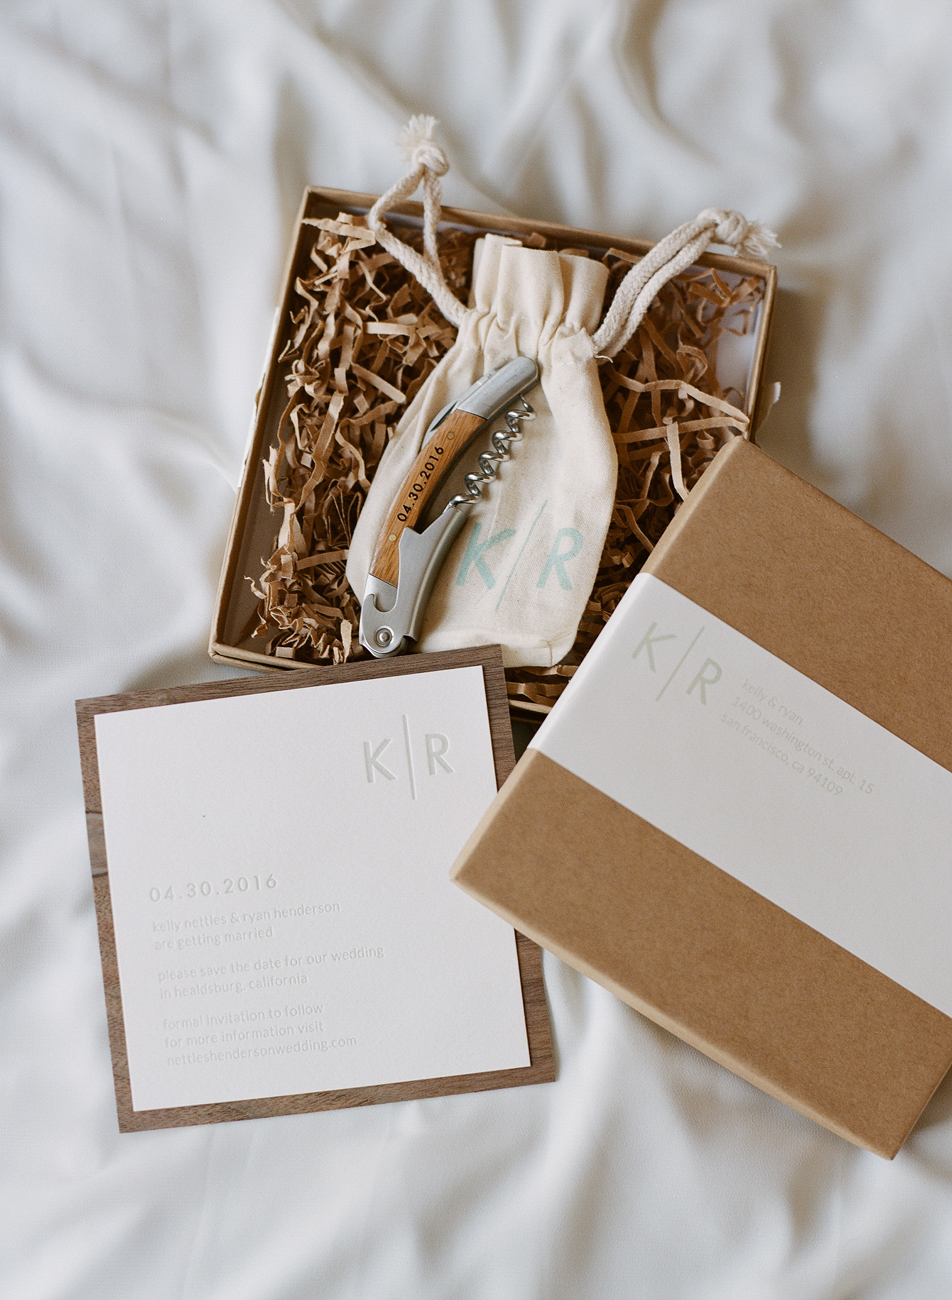 Wedding Guest Gift Packaging Design - KLN Design